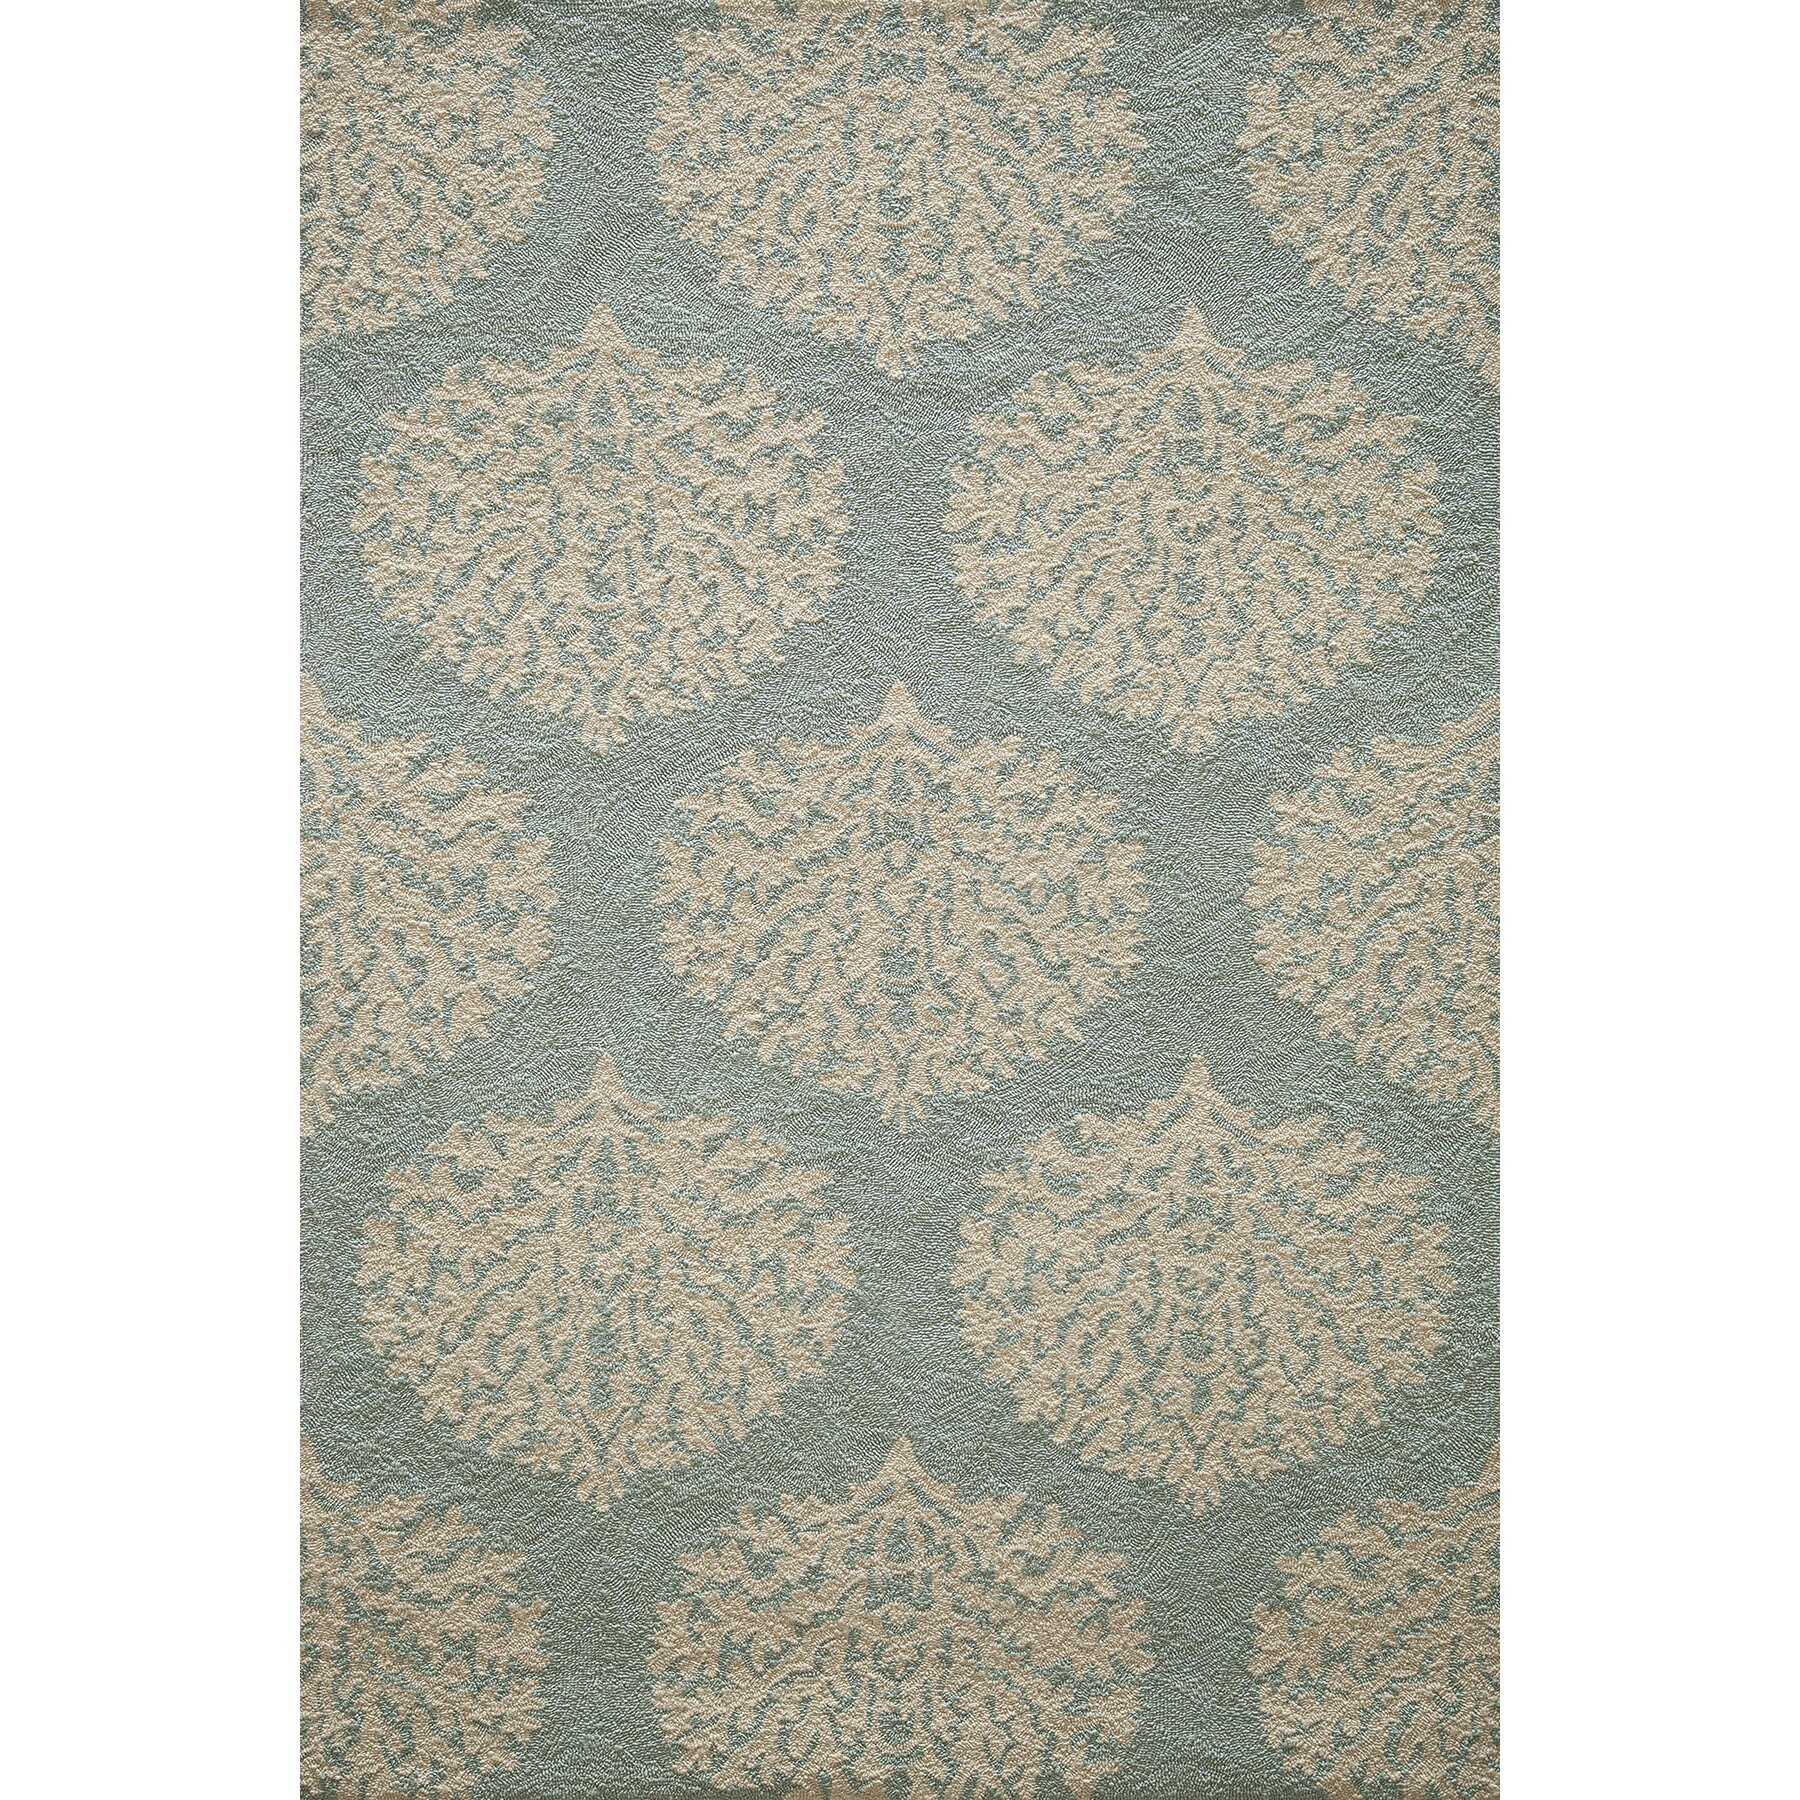 Birch lane hand woven blue indoor outdoor area rug for Woven vinyl outdoor rugs